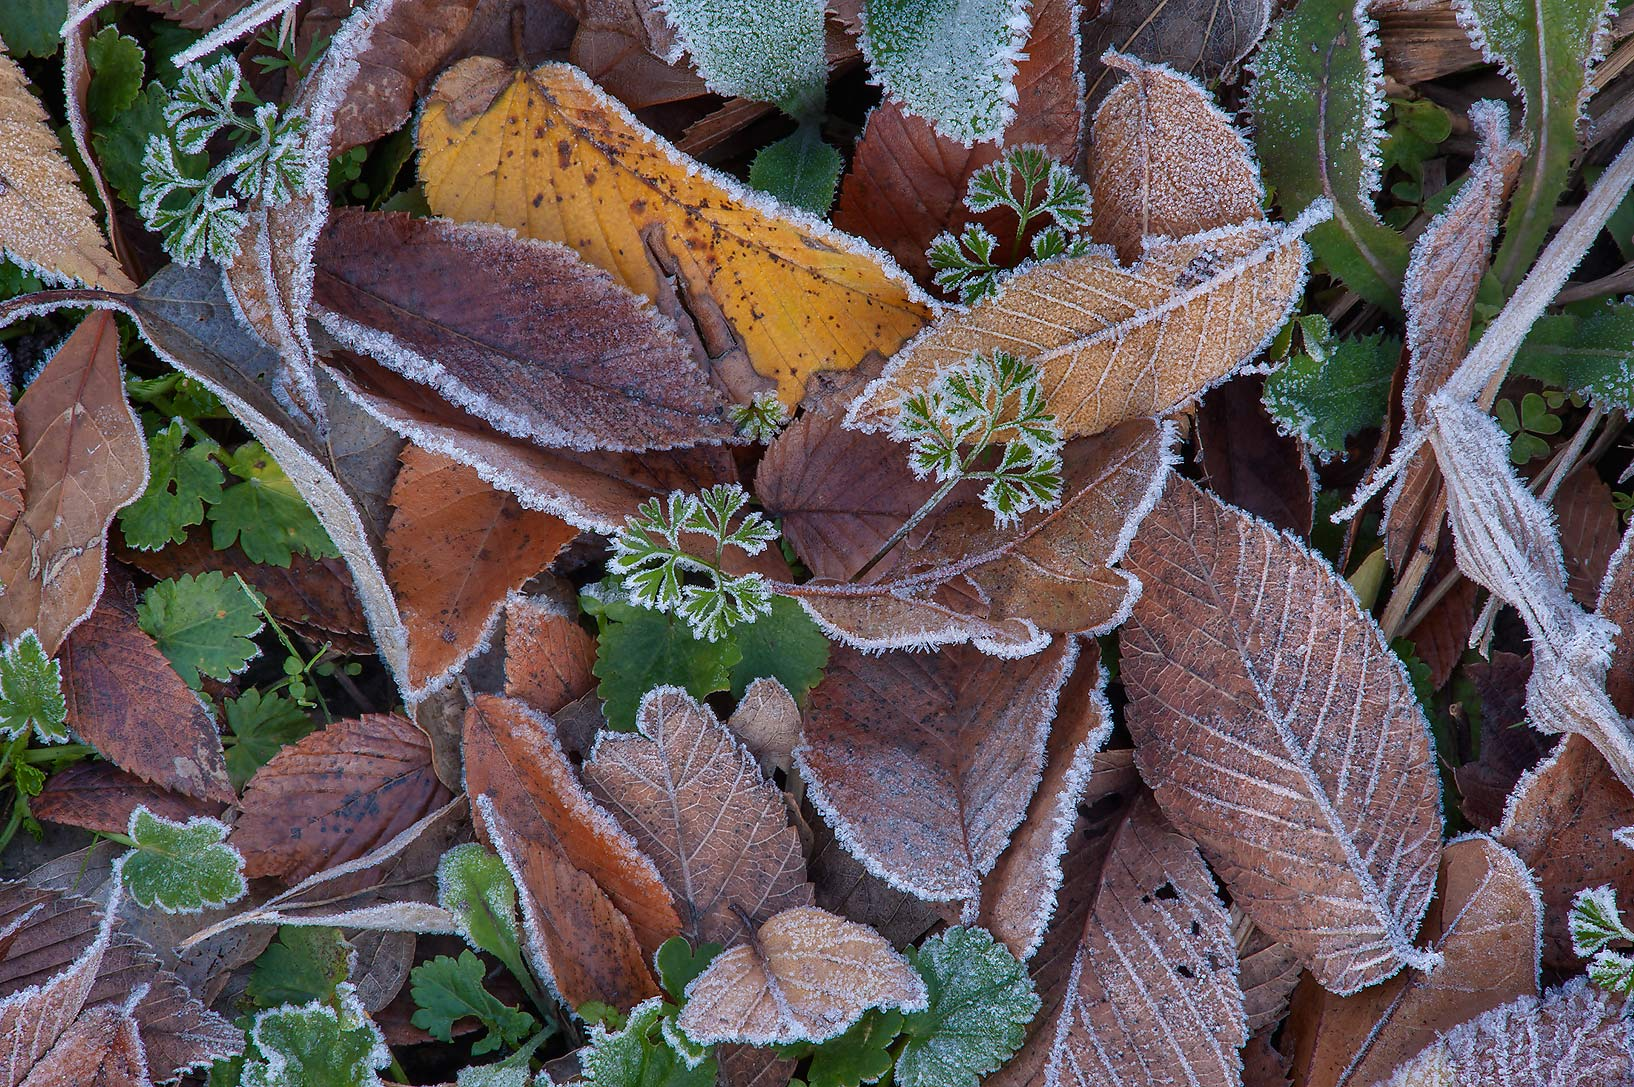 Morning freeze on brown and green leaves of Park Hudson Trail. Bryan, Texas